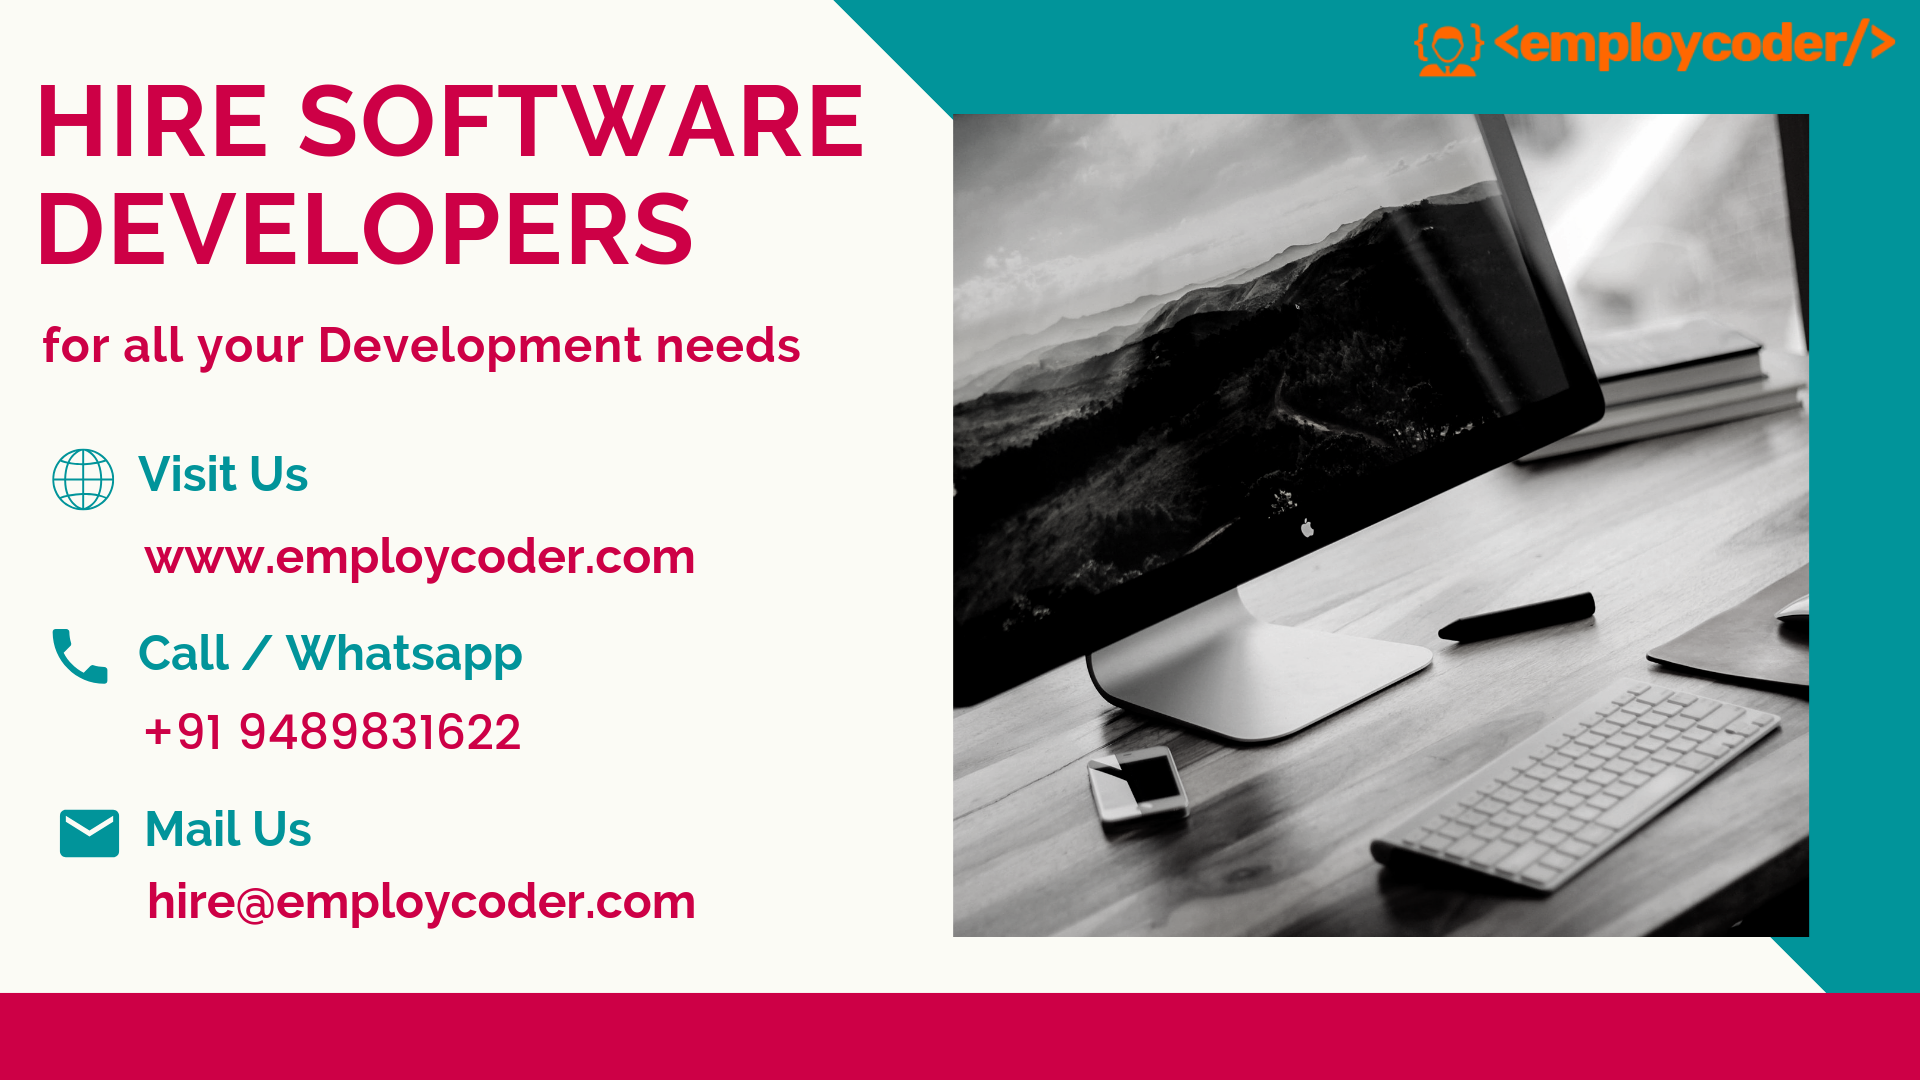 Hire Software Developers from Employcoder for all your Development Needs.